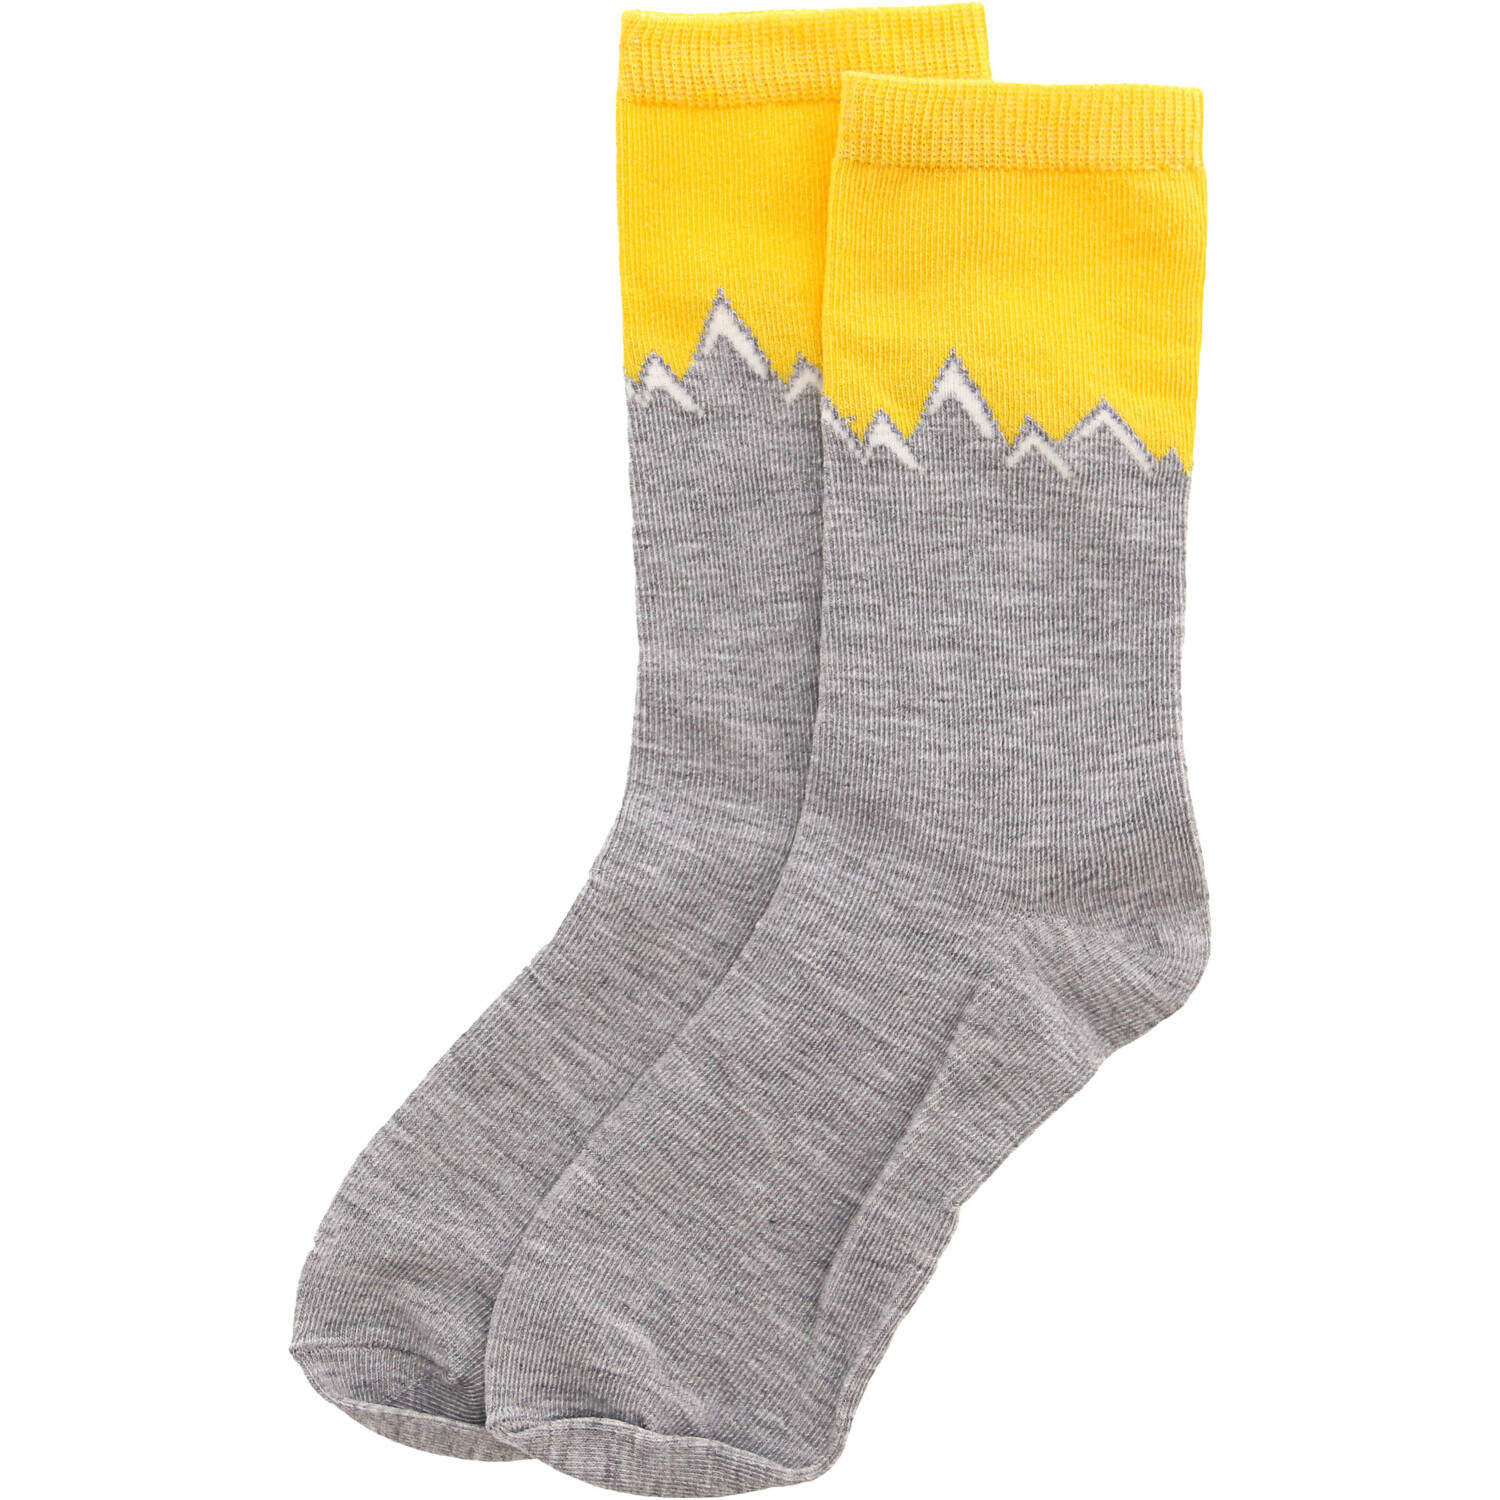 Janie And Jack Boys Gold Mountain Sock - 6-12 Months